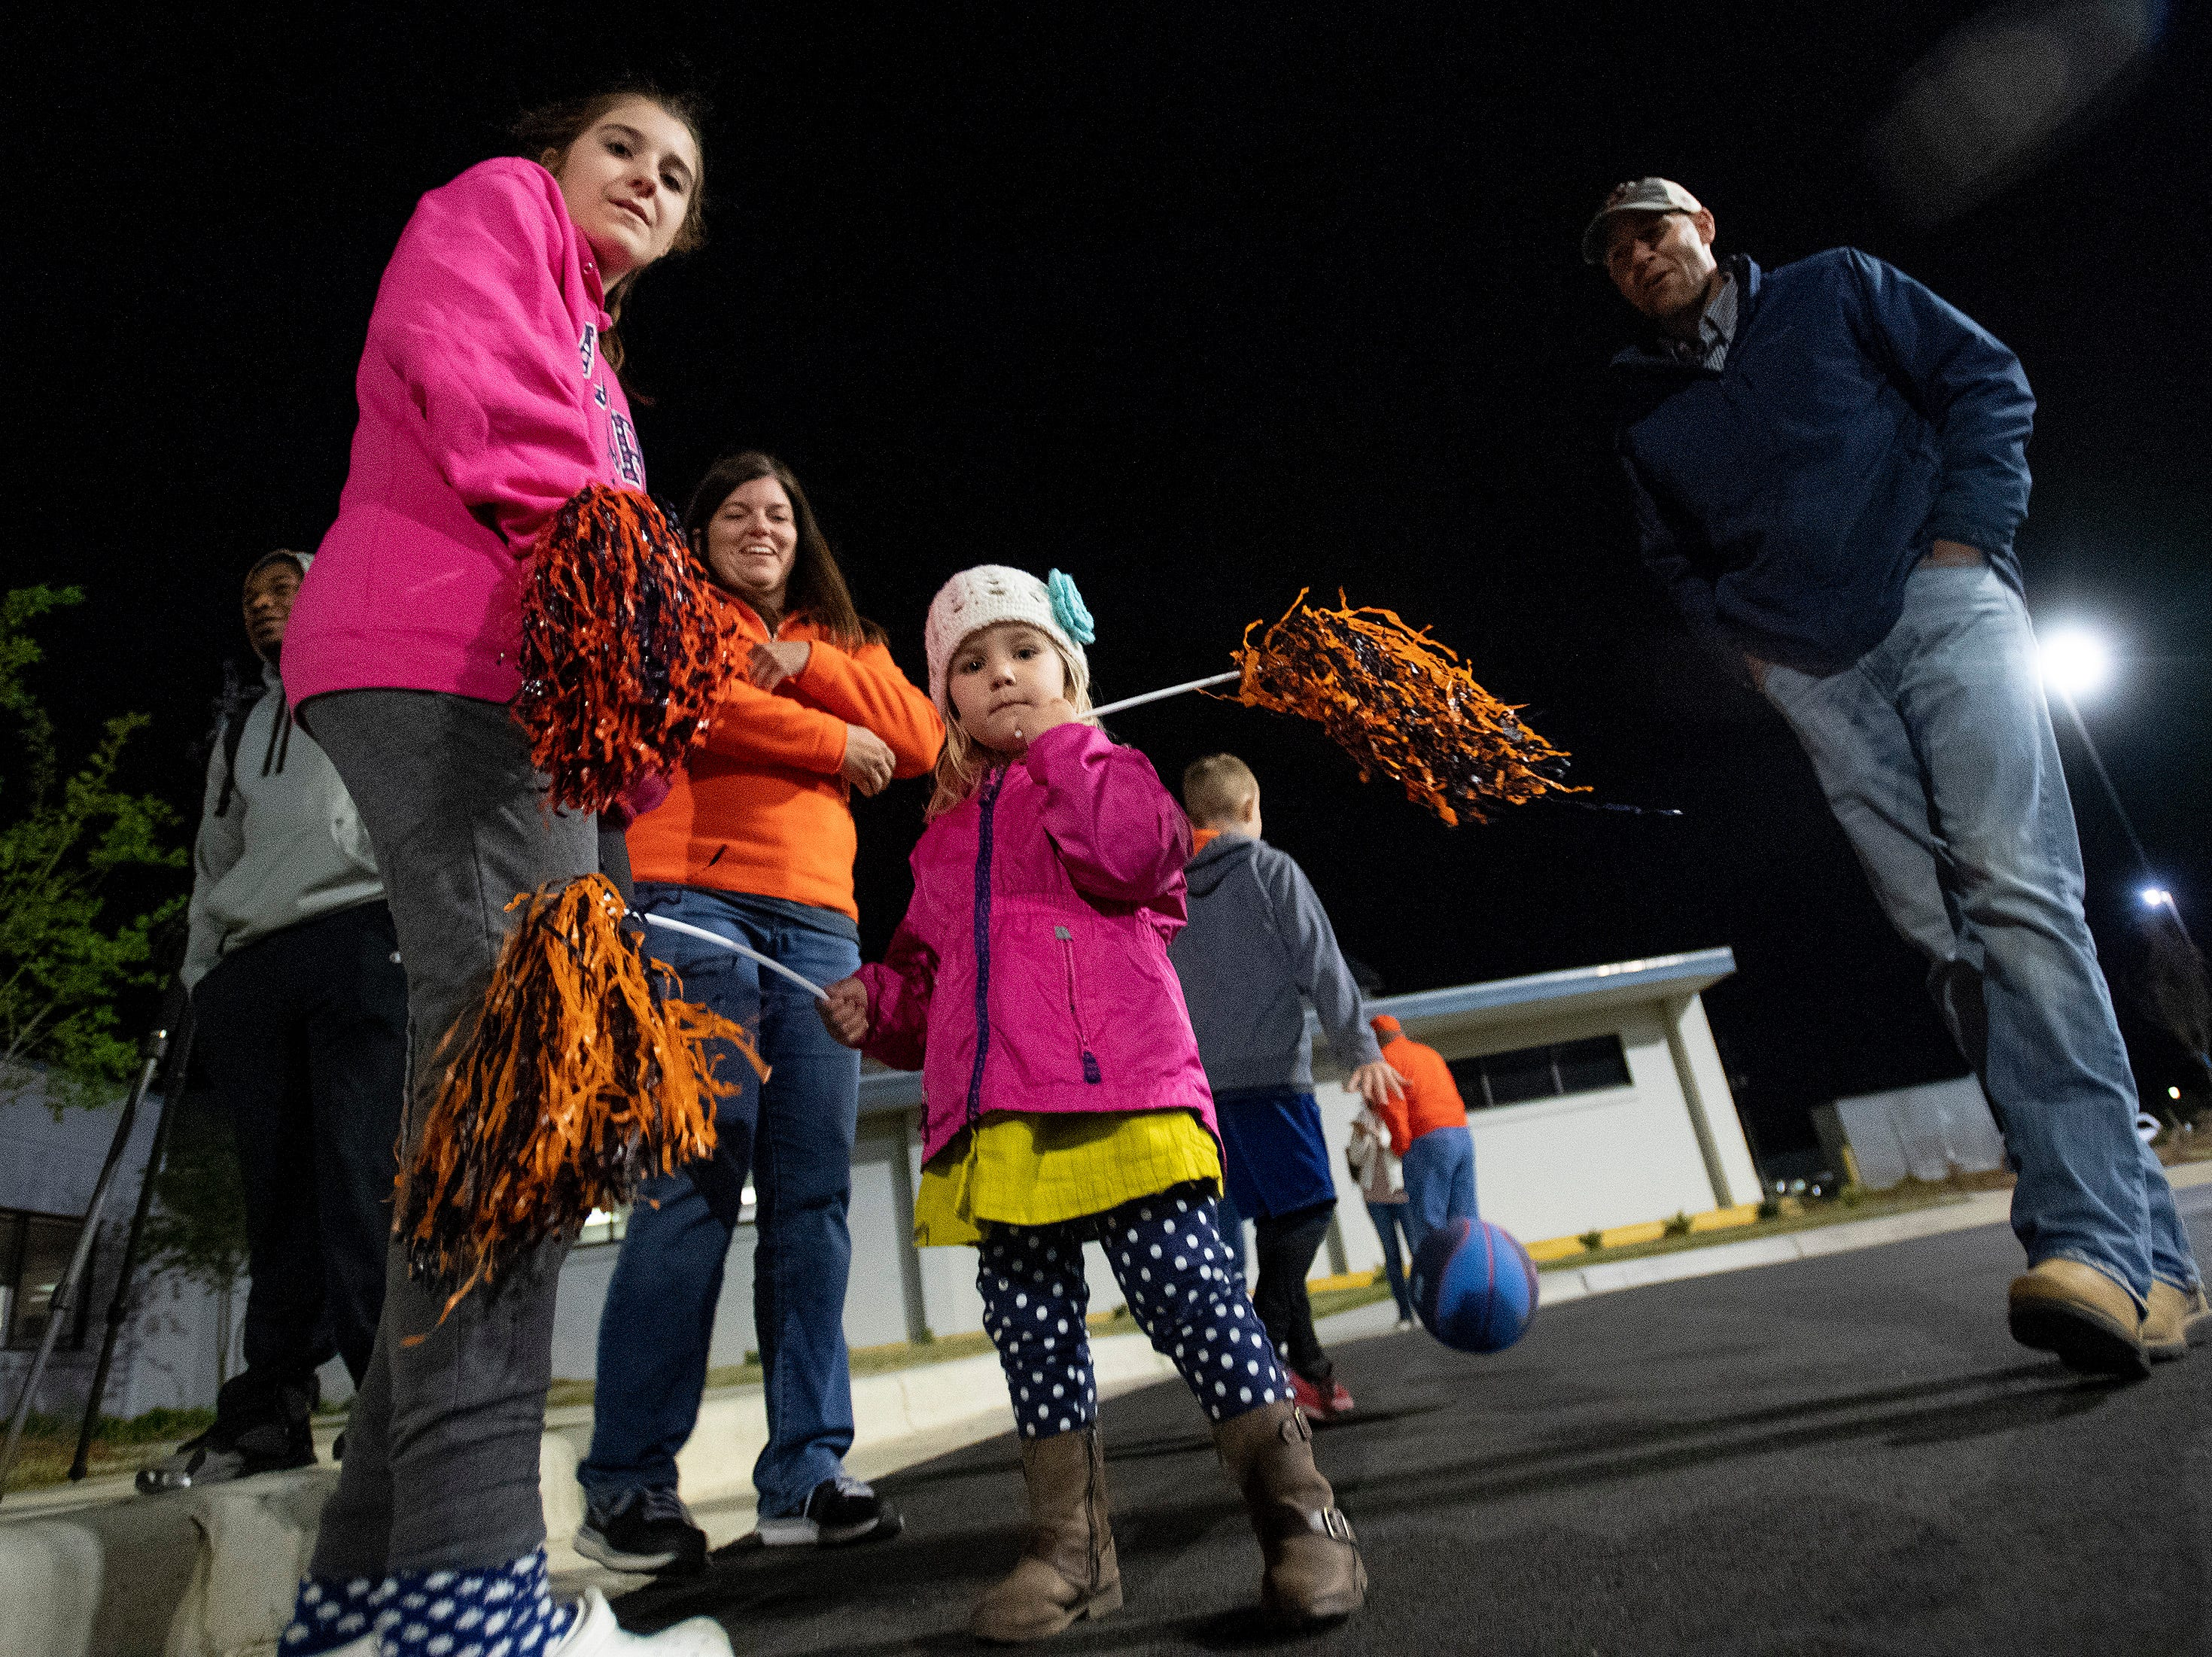 Fans wait for the Auburn men's basketball team to arrive at the Montgomery, Ala., airport on Sunday evening March 31, 2019 after defeating Kentucky in Kansas City to advance to the NCAA Basketball Final Four next weekend.